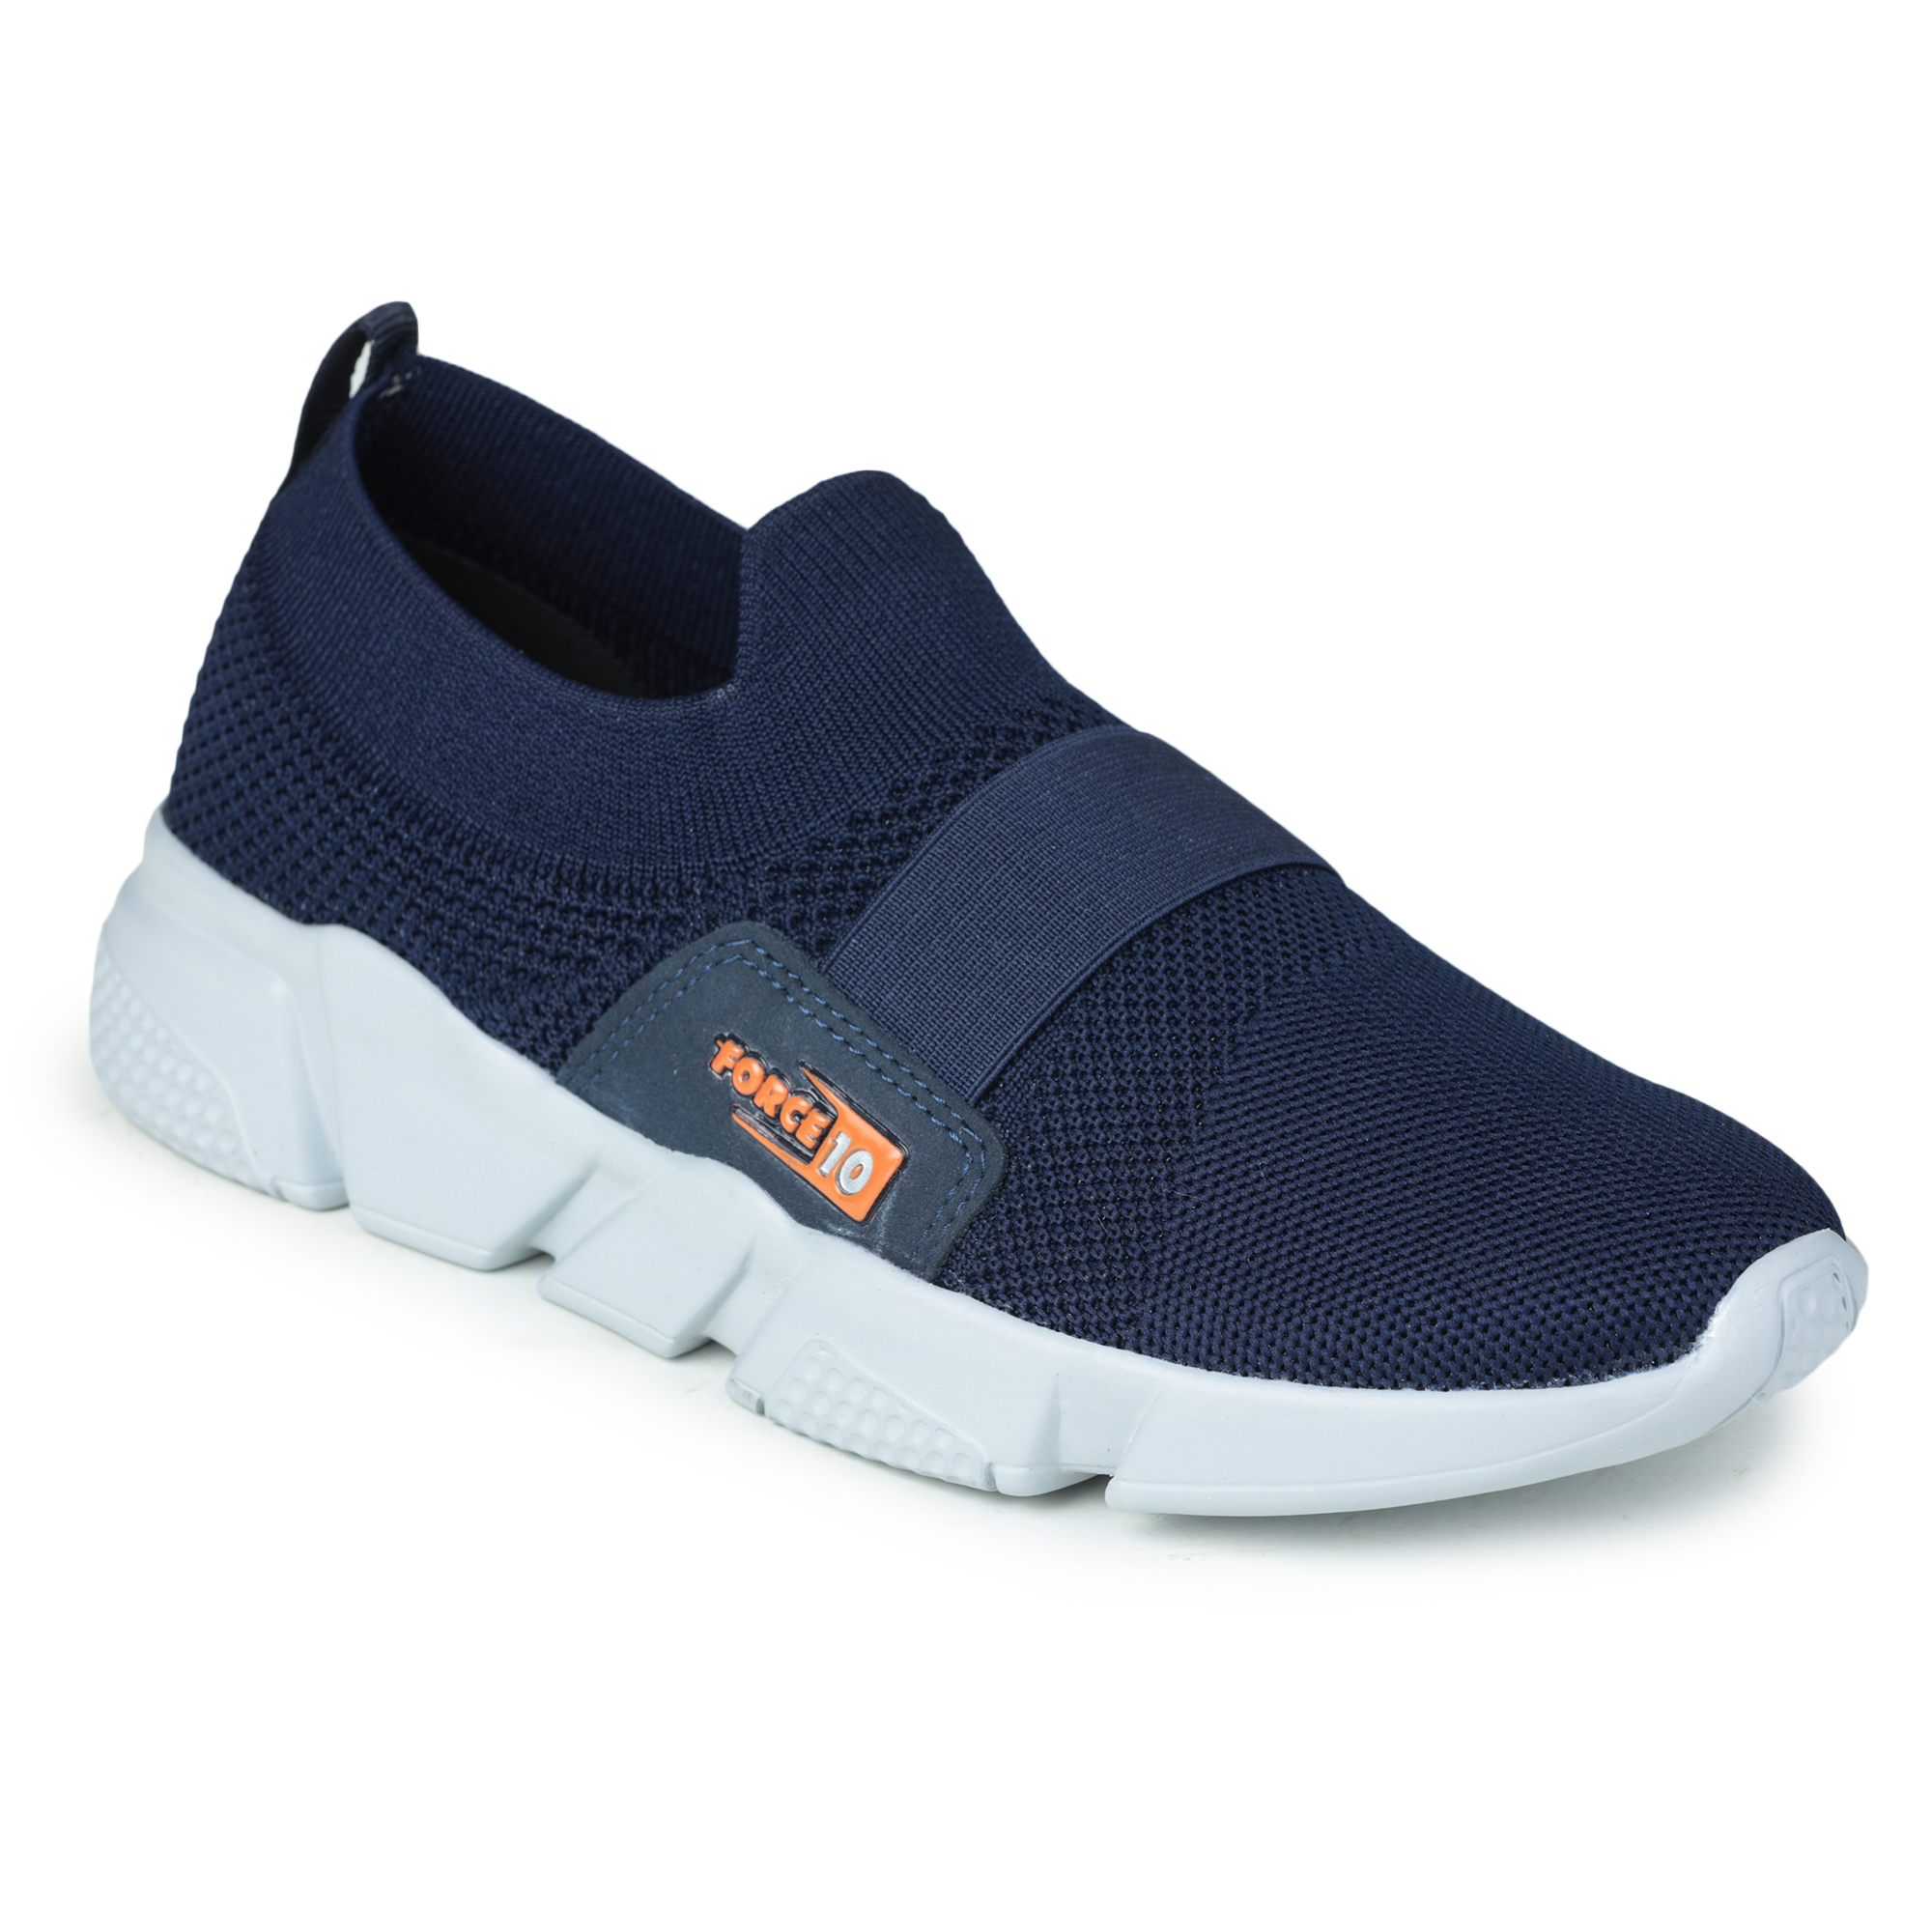 Liberty | Liberty FORCE 10 Indoor Sports Shoes WILLEY_N.BLUE For - Women